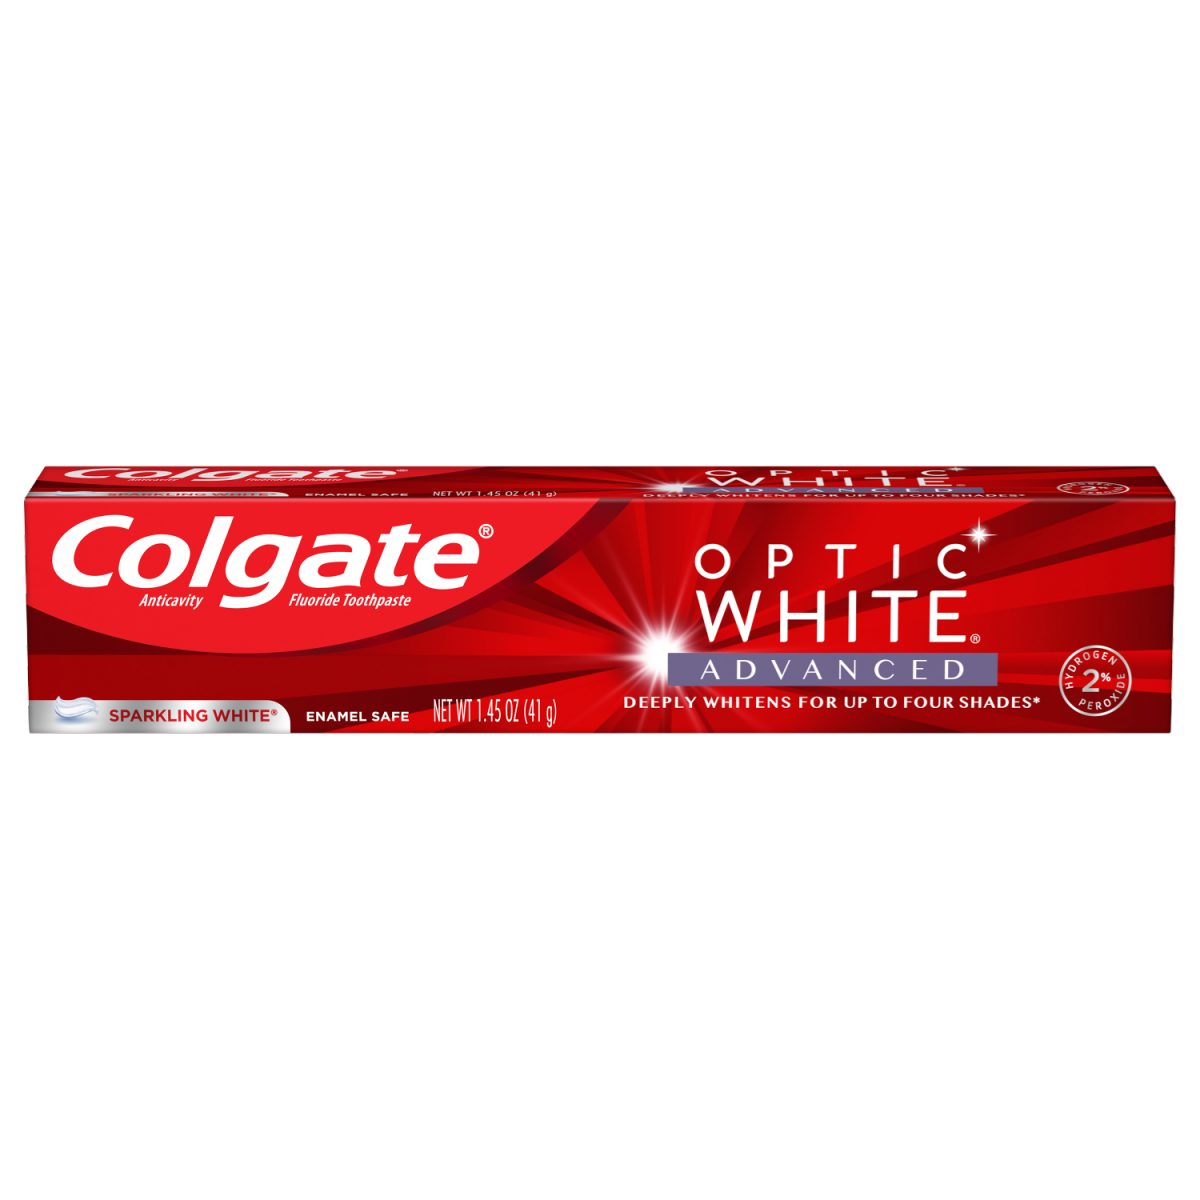 Colgate Optic White Advanced